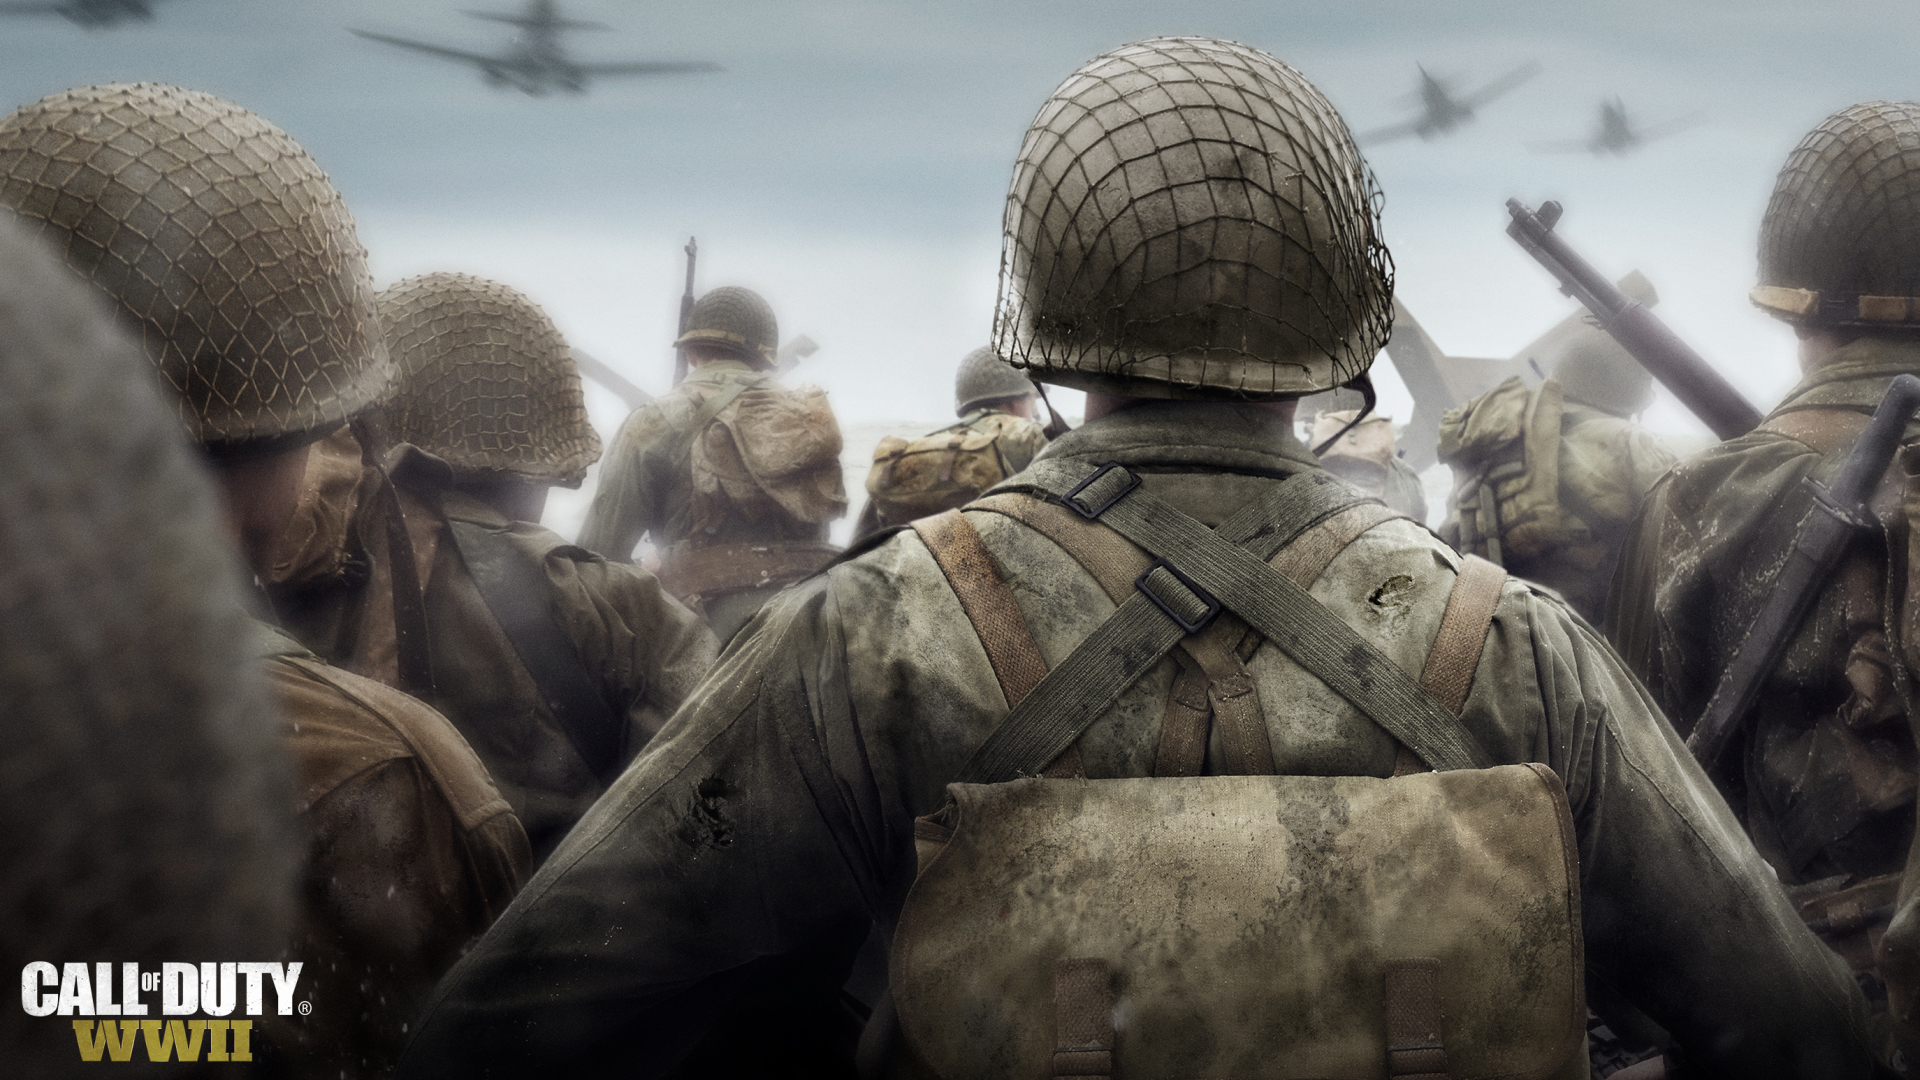 Call of Duty: WWII D-Day. Virtual background to use on Zoom, Microsoft Teams, Skype, Google Meet, WebEx or any other compatible app.